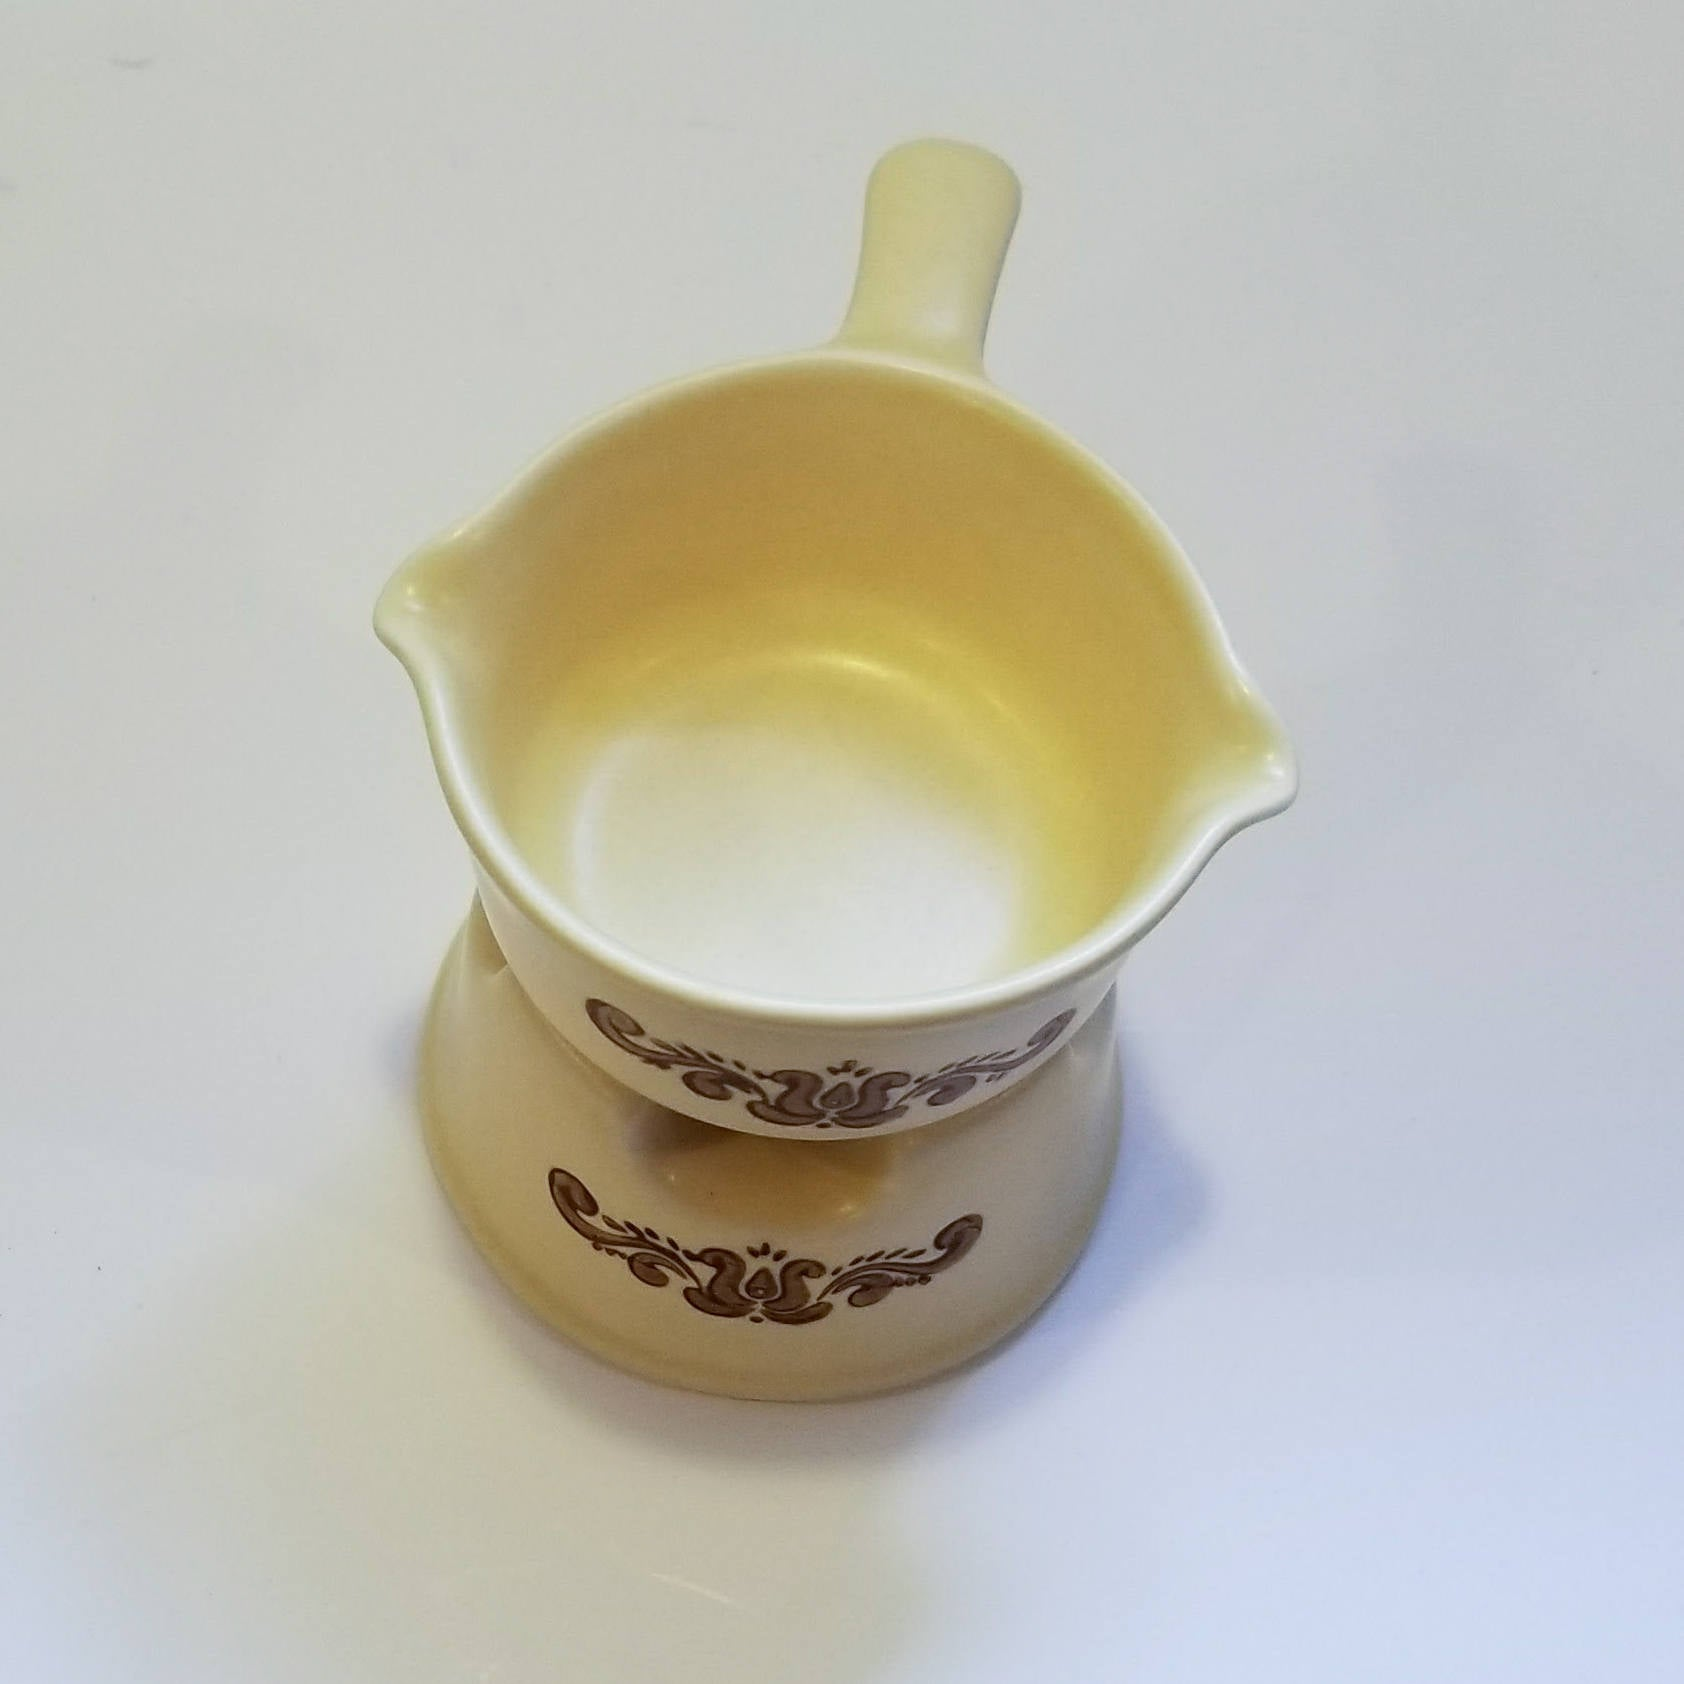 Discontinued Potpourri-Butter Sauce w/ Stand Gravy Boat in Village (Made in USA) by Pfaltzgraff